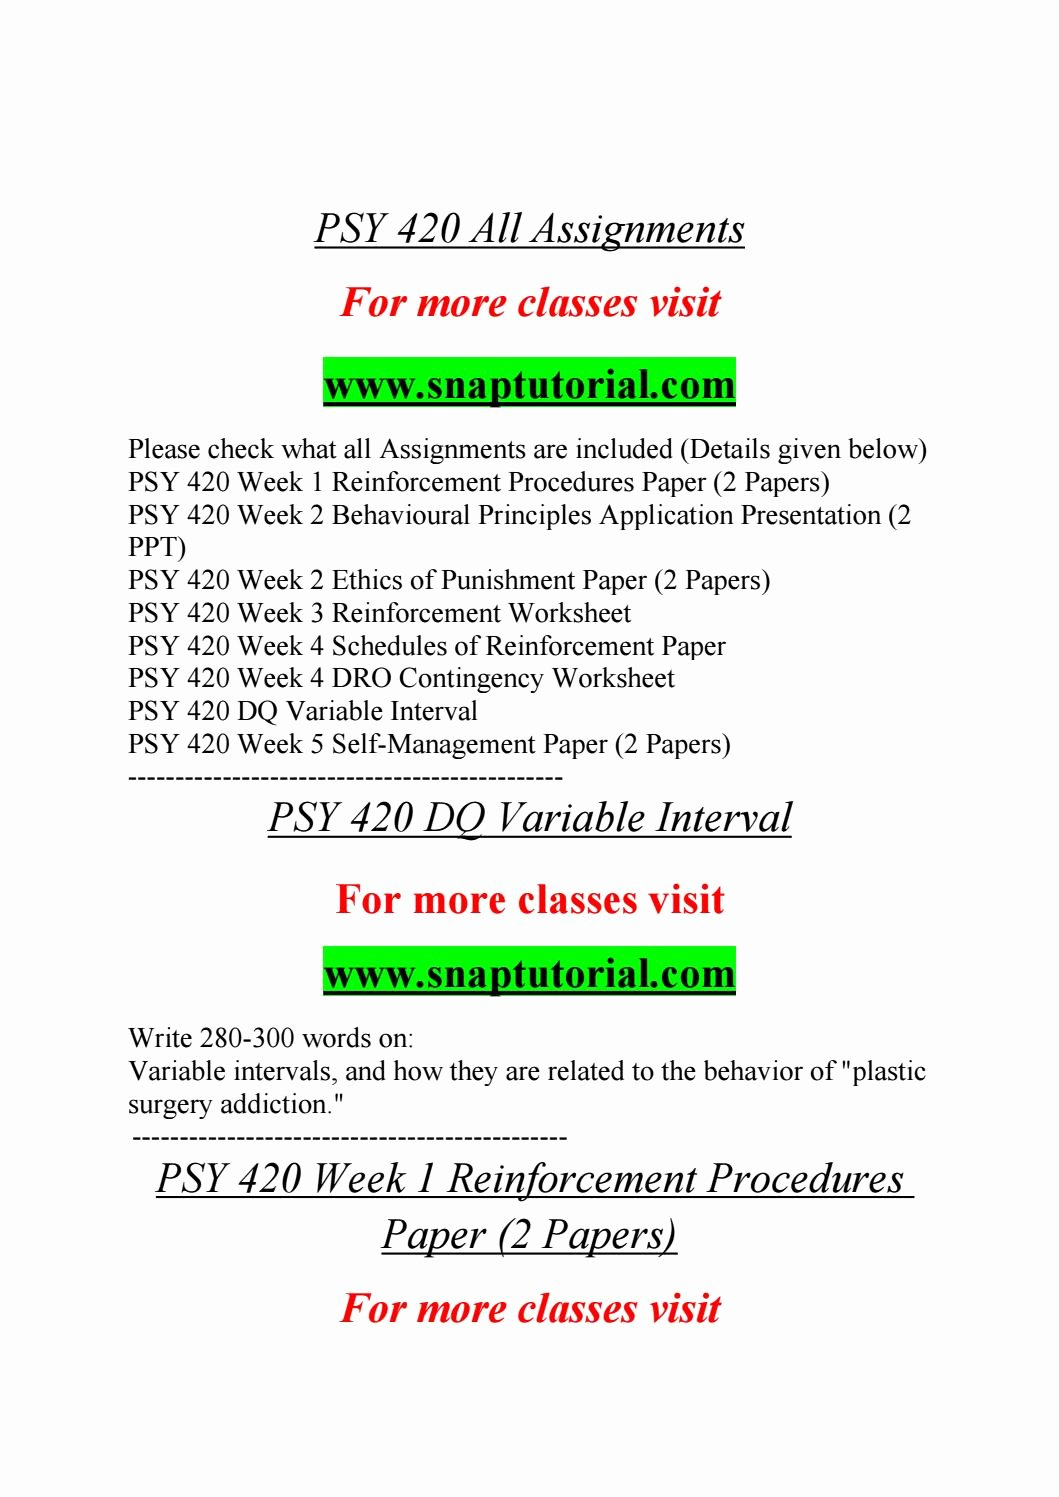 Schedules Of Reinforcement Worksheet Awesome Psy 420 All assignments by Flwr01 issuu